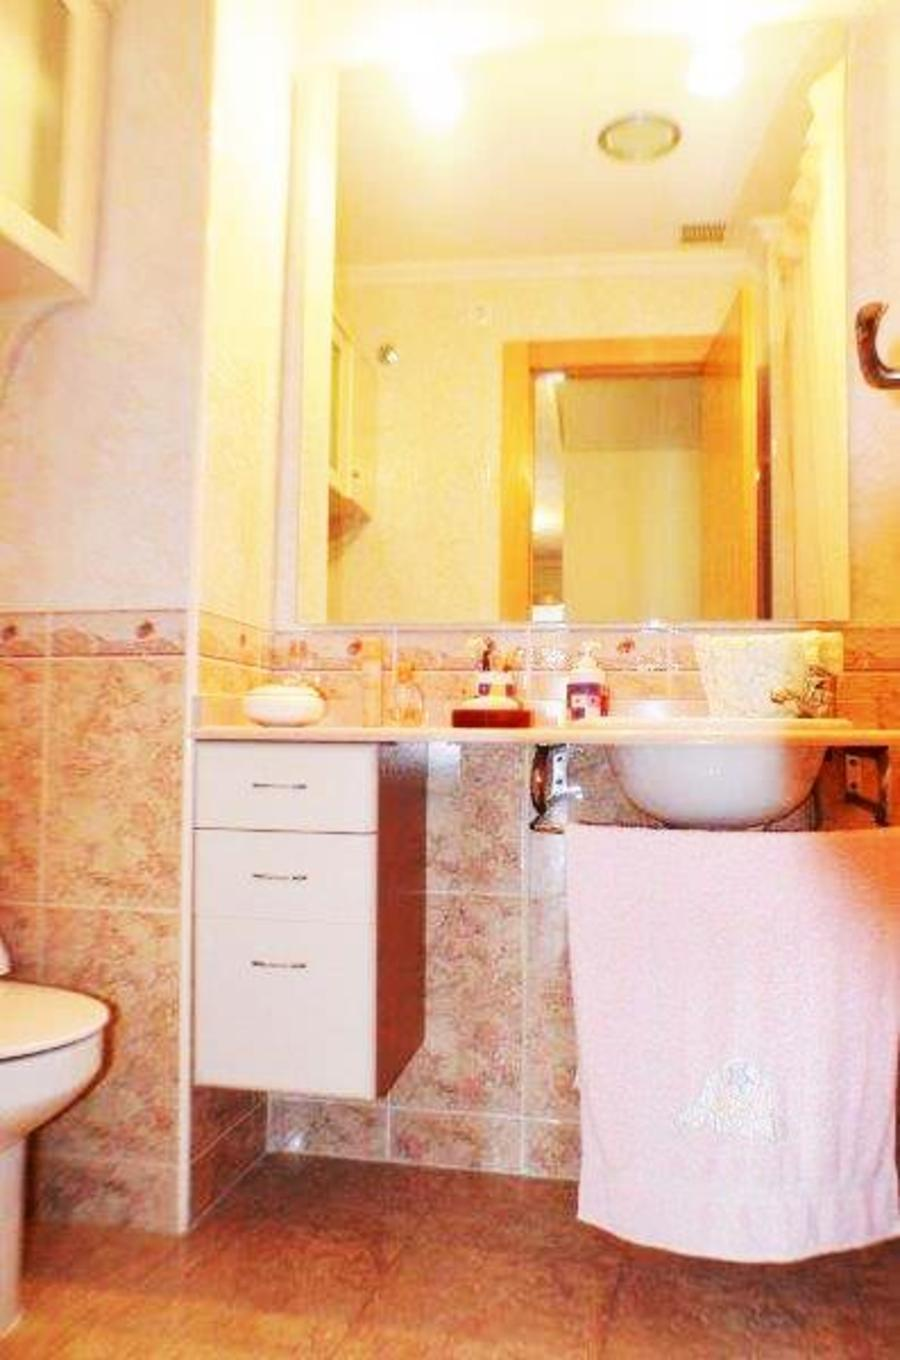 N2007: Penthouse for sale in Torrevieja